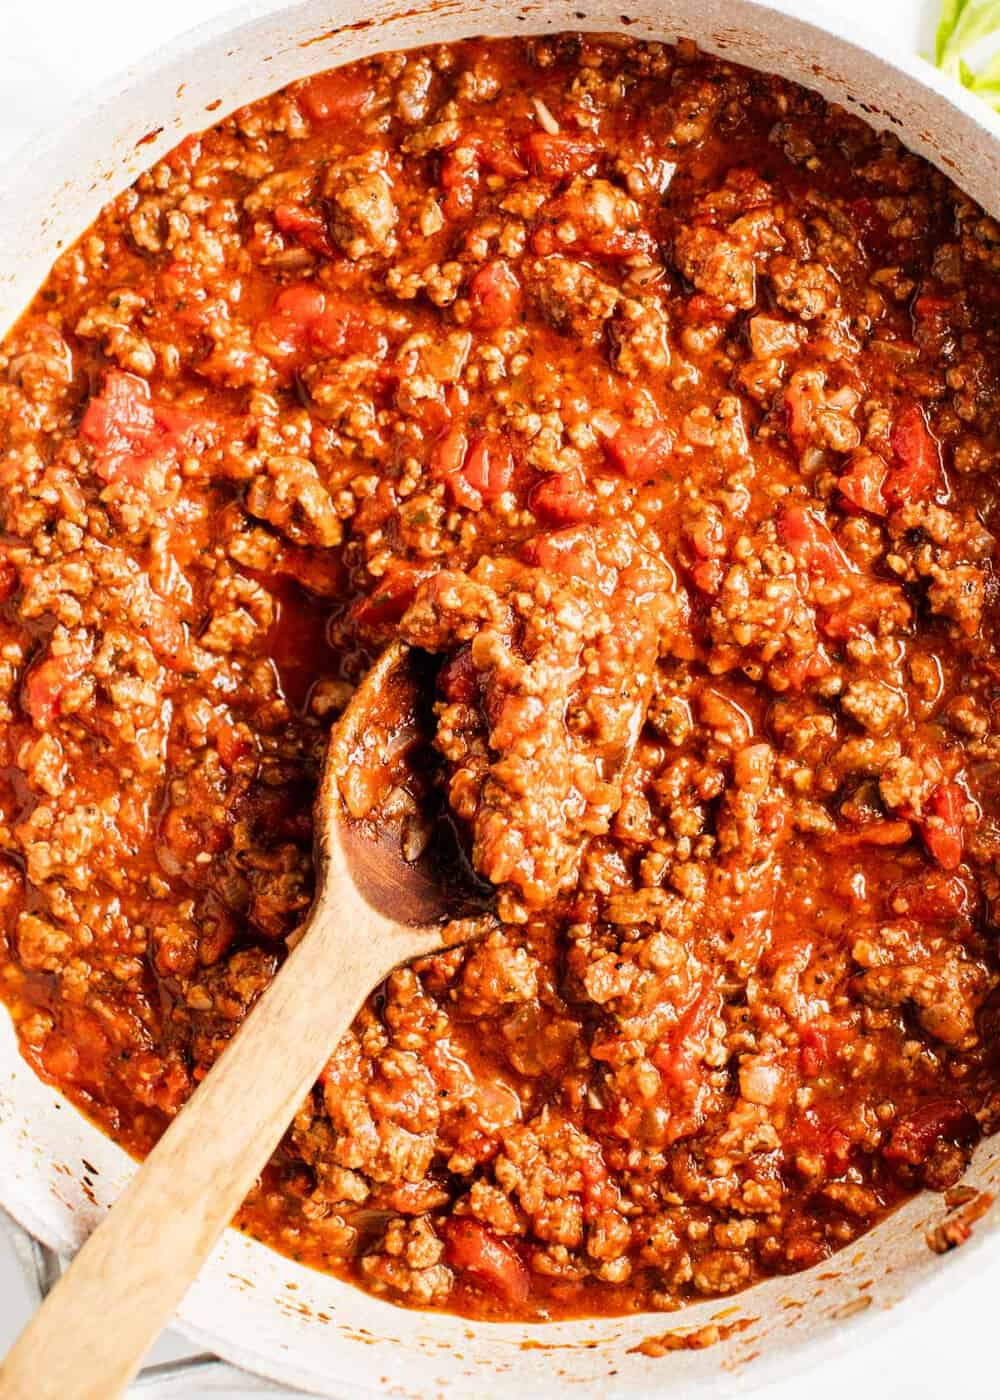 spaghetti meat sauce in a pan with a wooden spoon